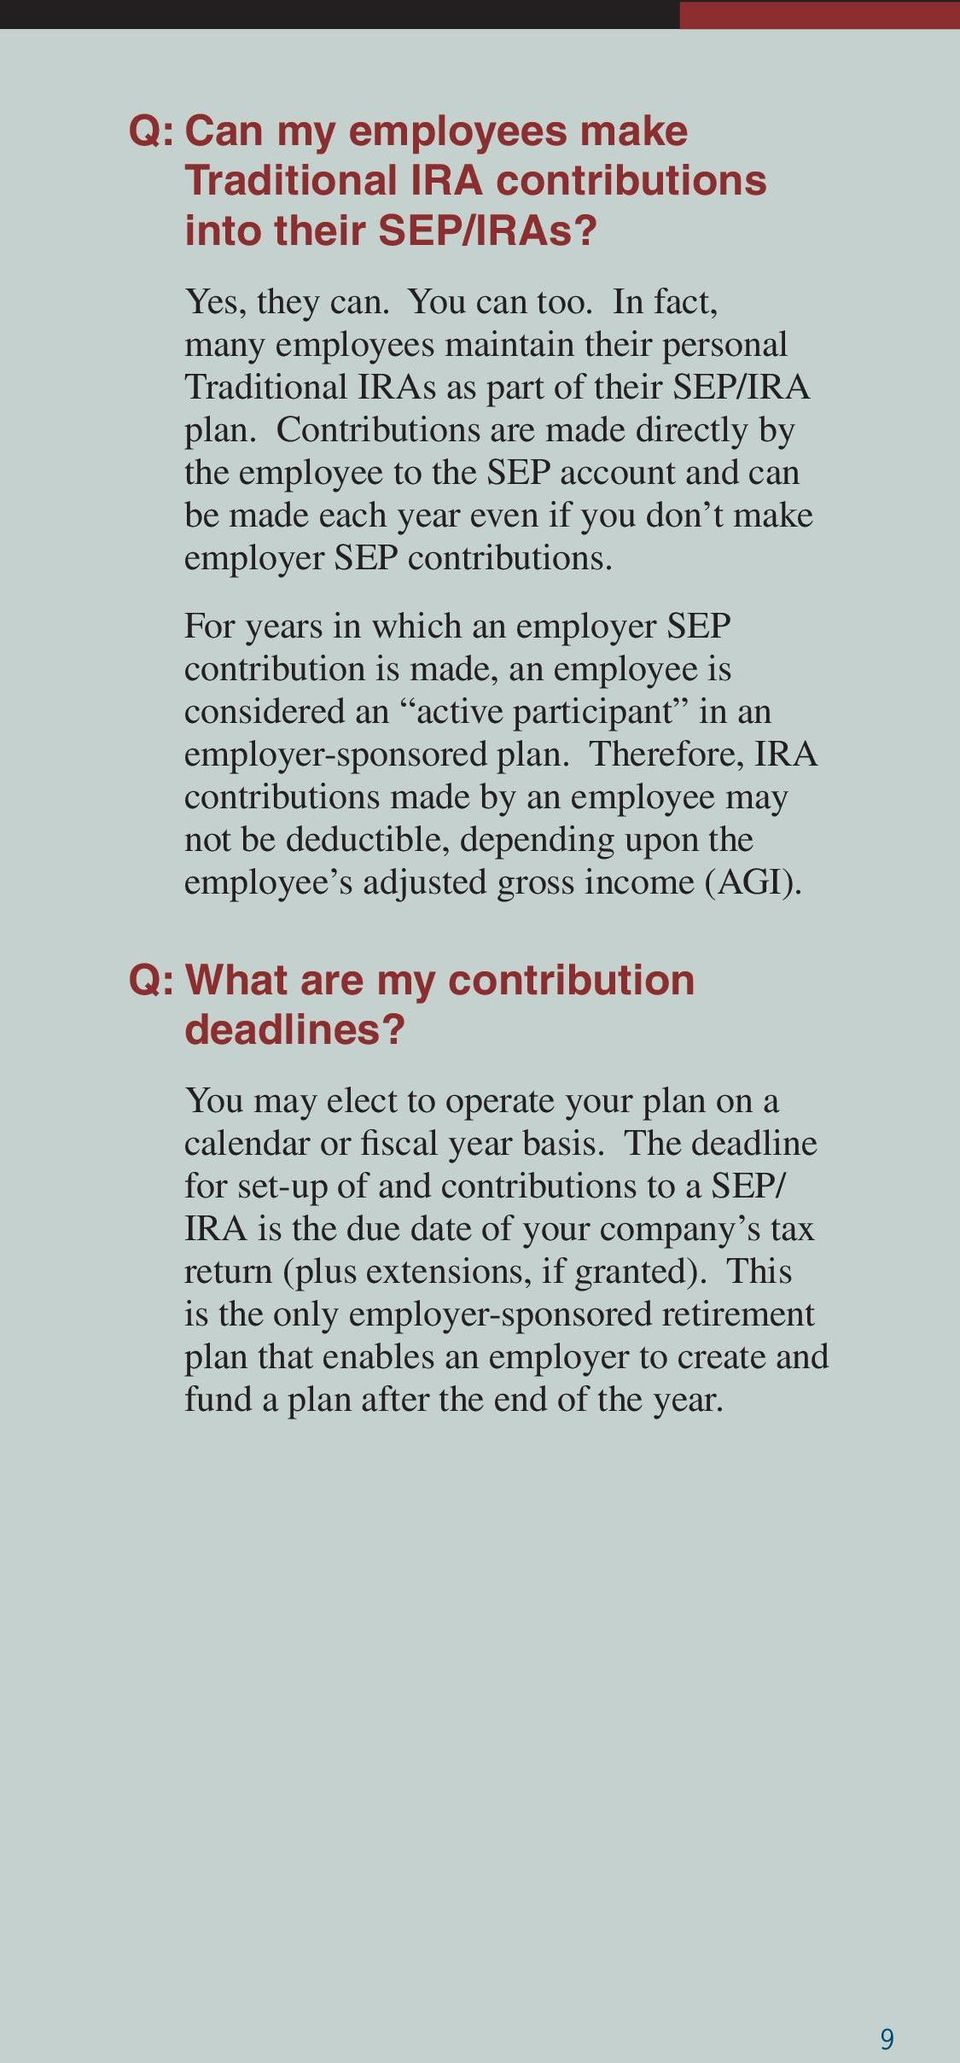 For years in which an employer SEP contribution is made, an employee is considered an active participant in an employer-sponsored plan.